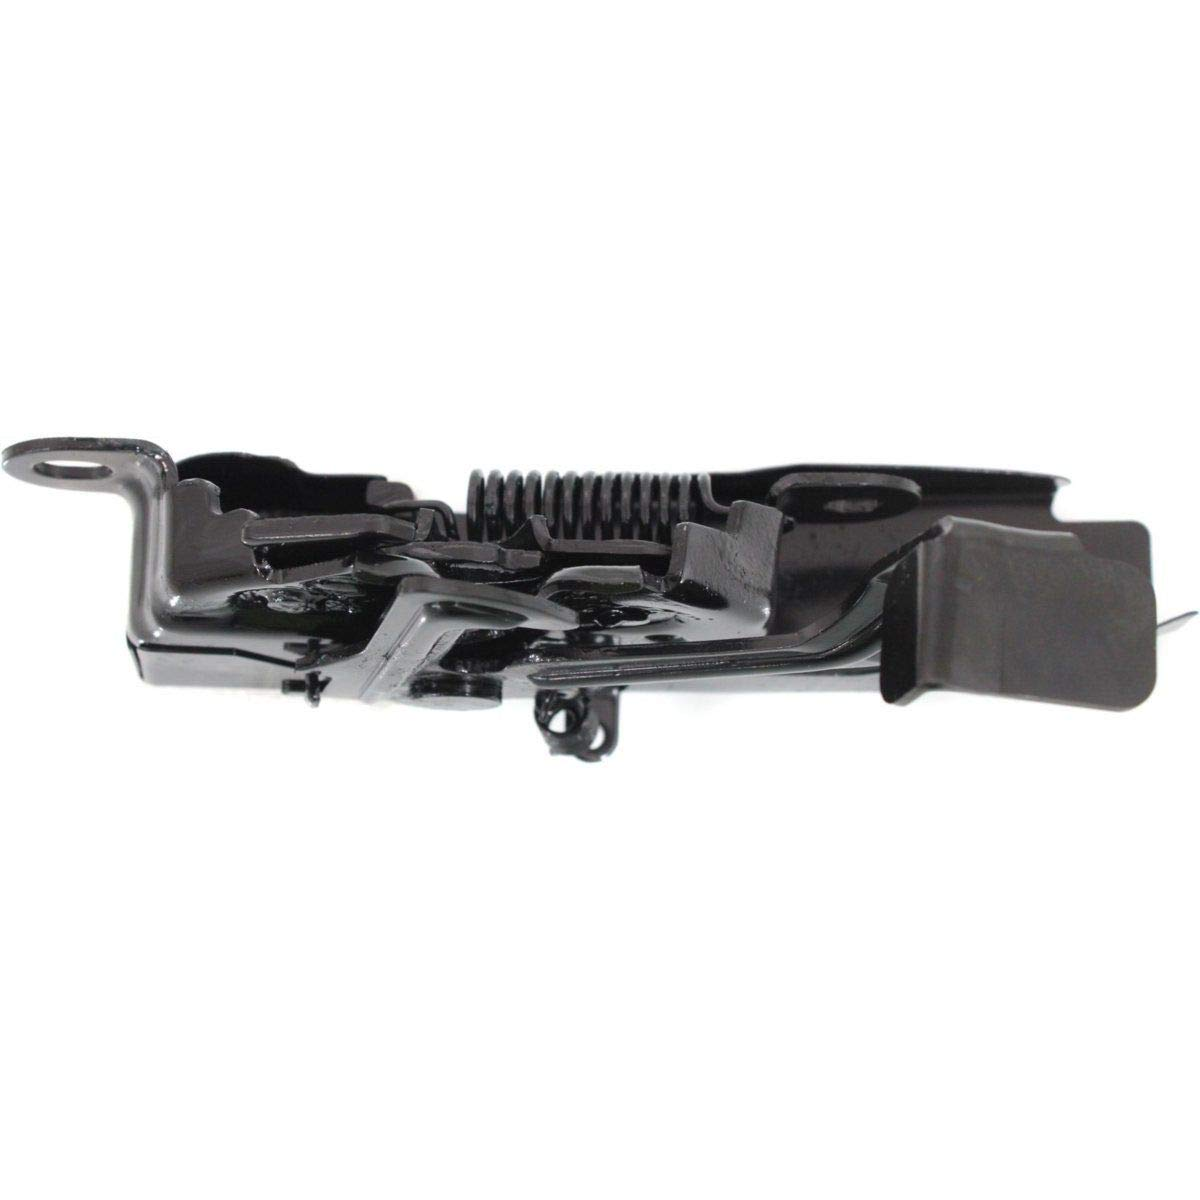 New Hood Latch Lock for Toyota Camry 2007-2011 Fits TO1234118 5351006180